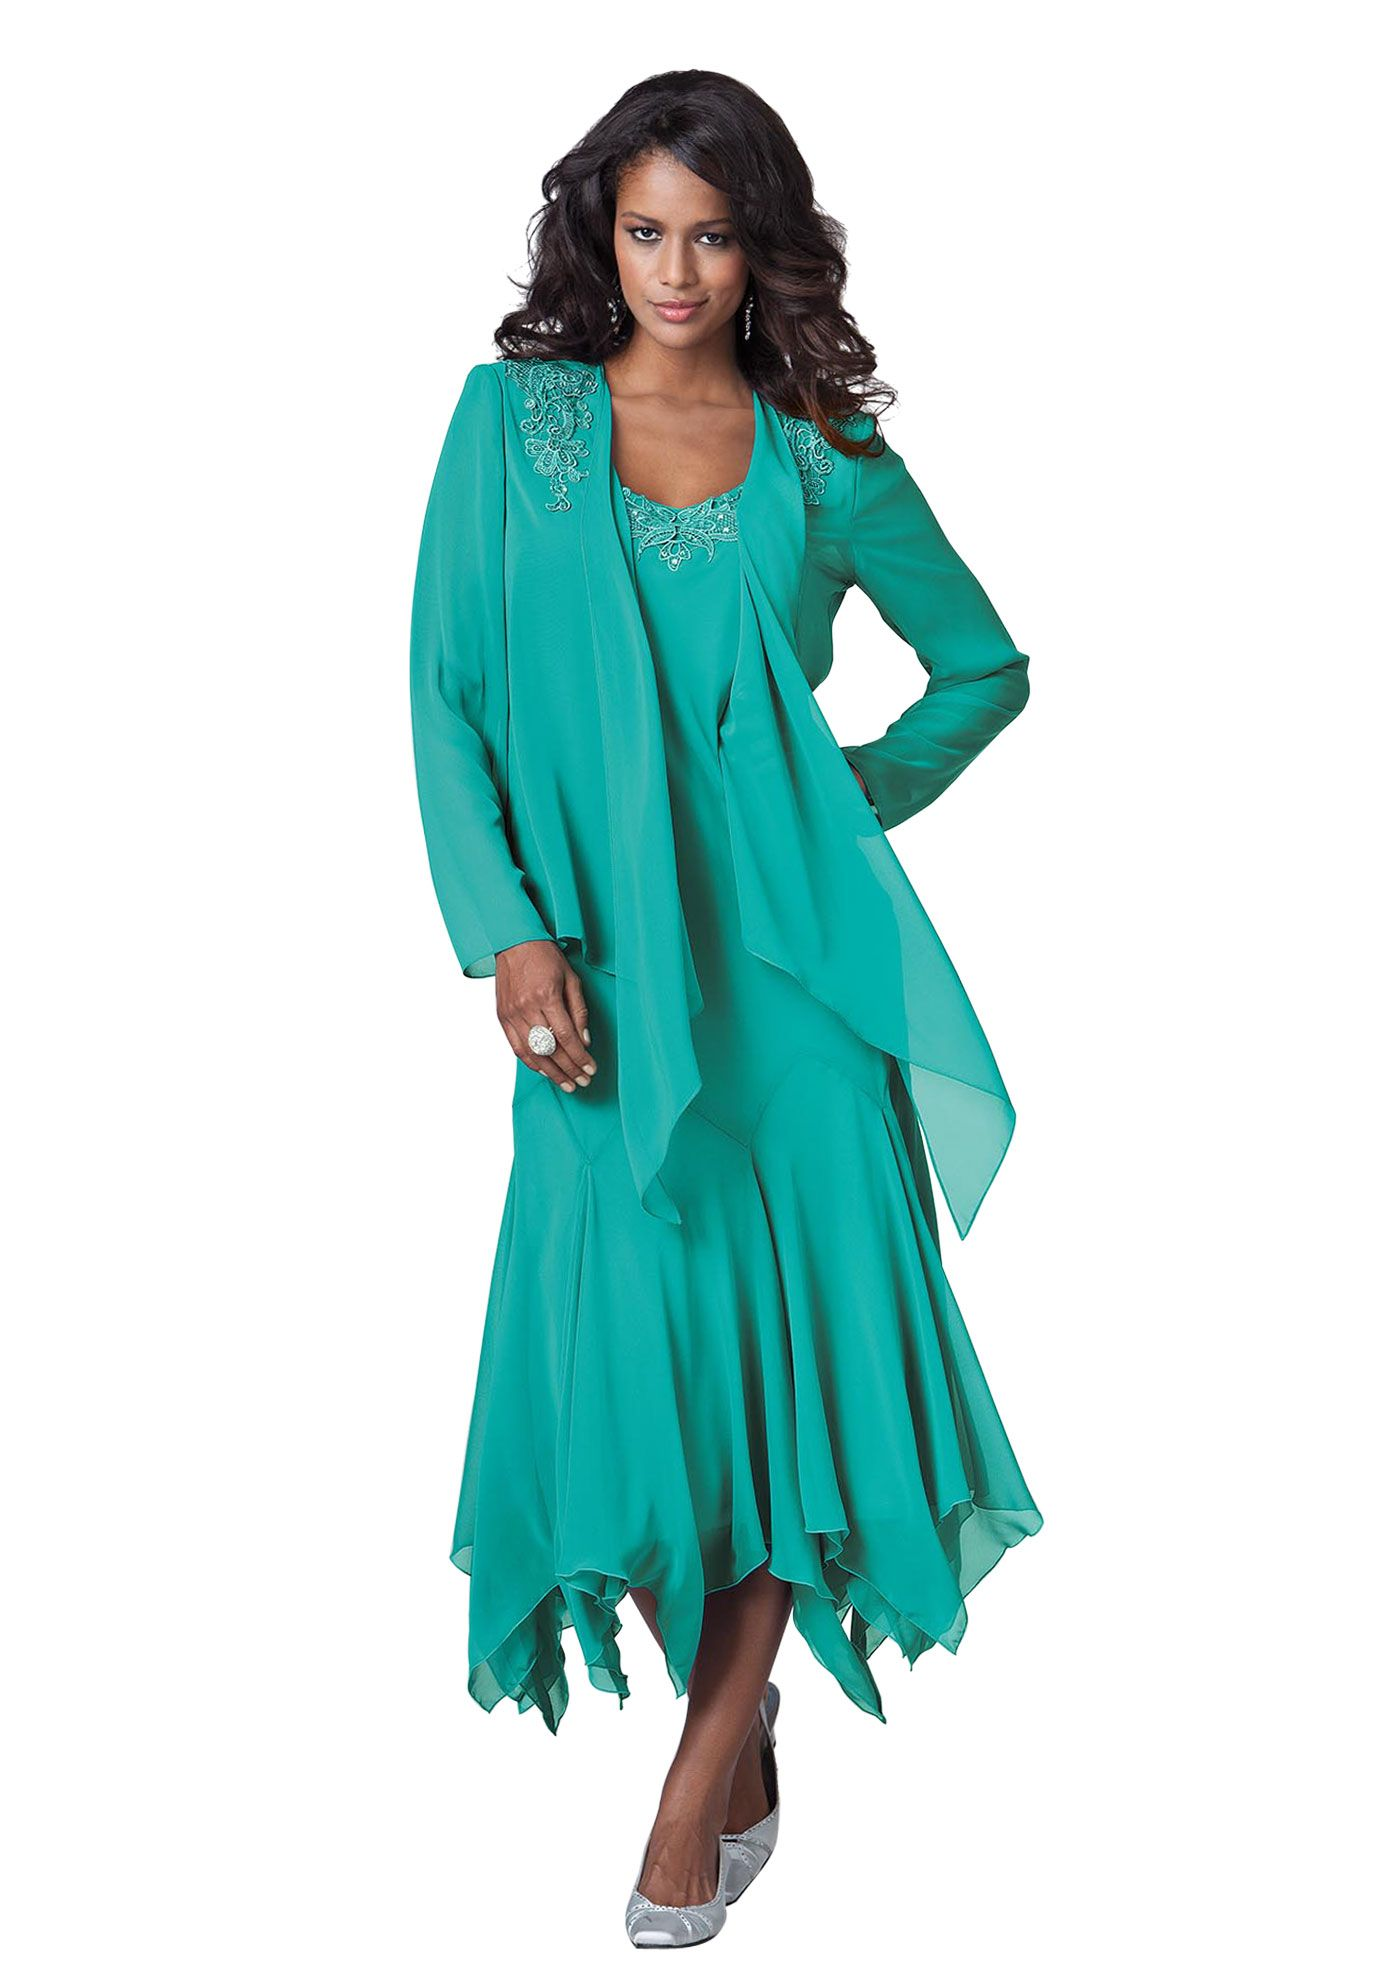 Jacket Dress With Beaded Hanky Hem Plus Size Separates And Sets Roamans